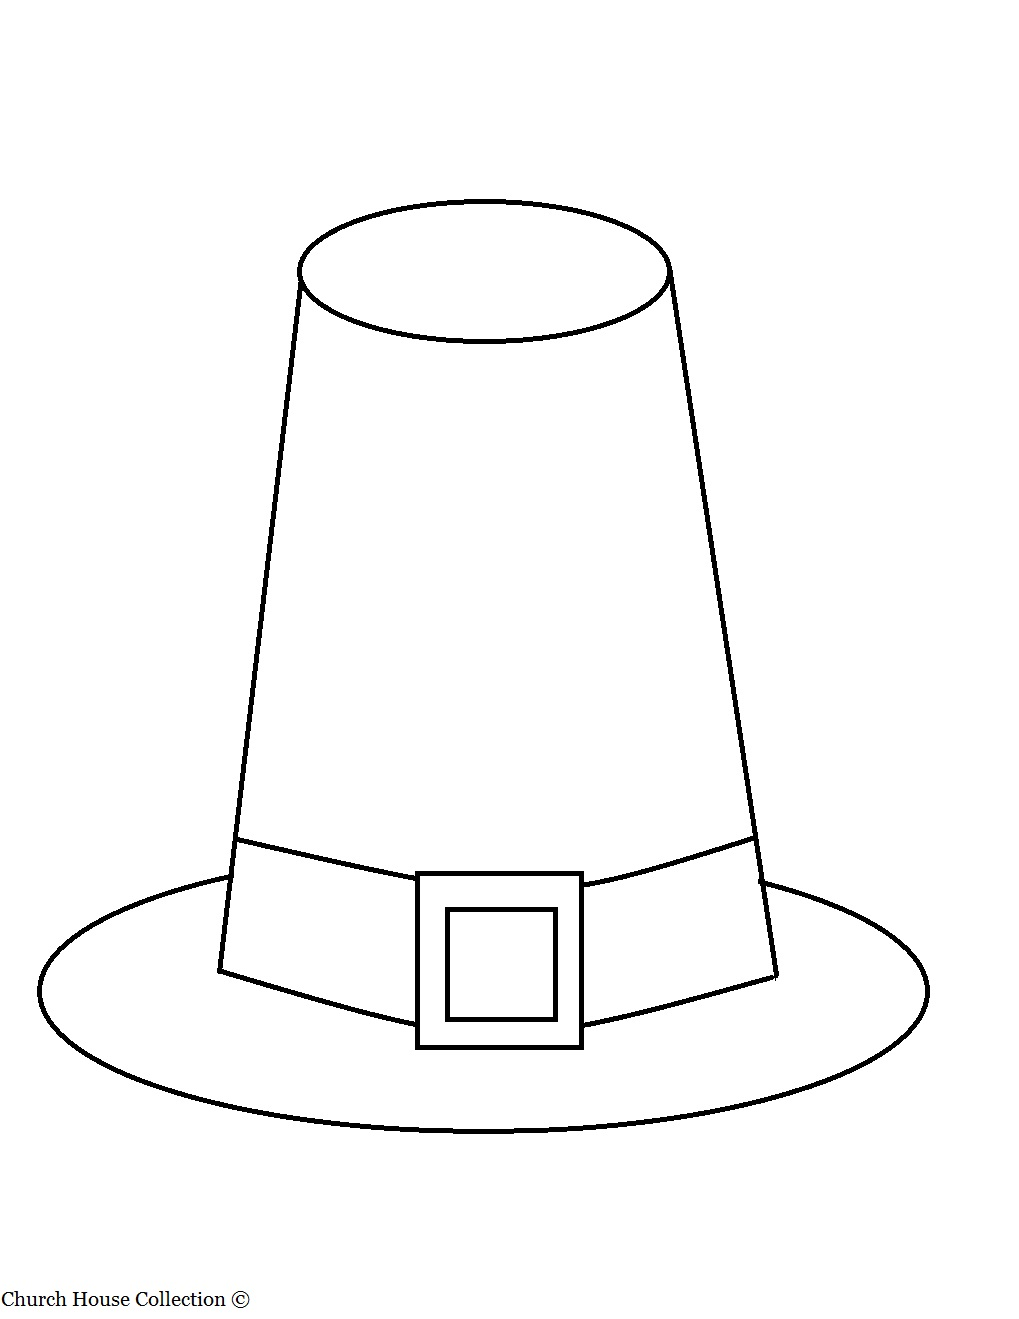 photo regarding Printable Pilgrim Hats named Thanksgiving Pilgrim Hat Coloring Web site